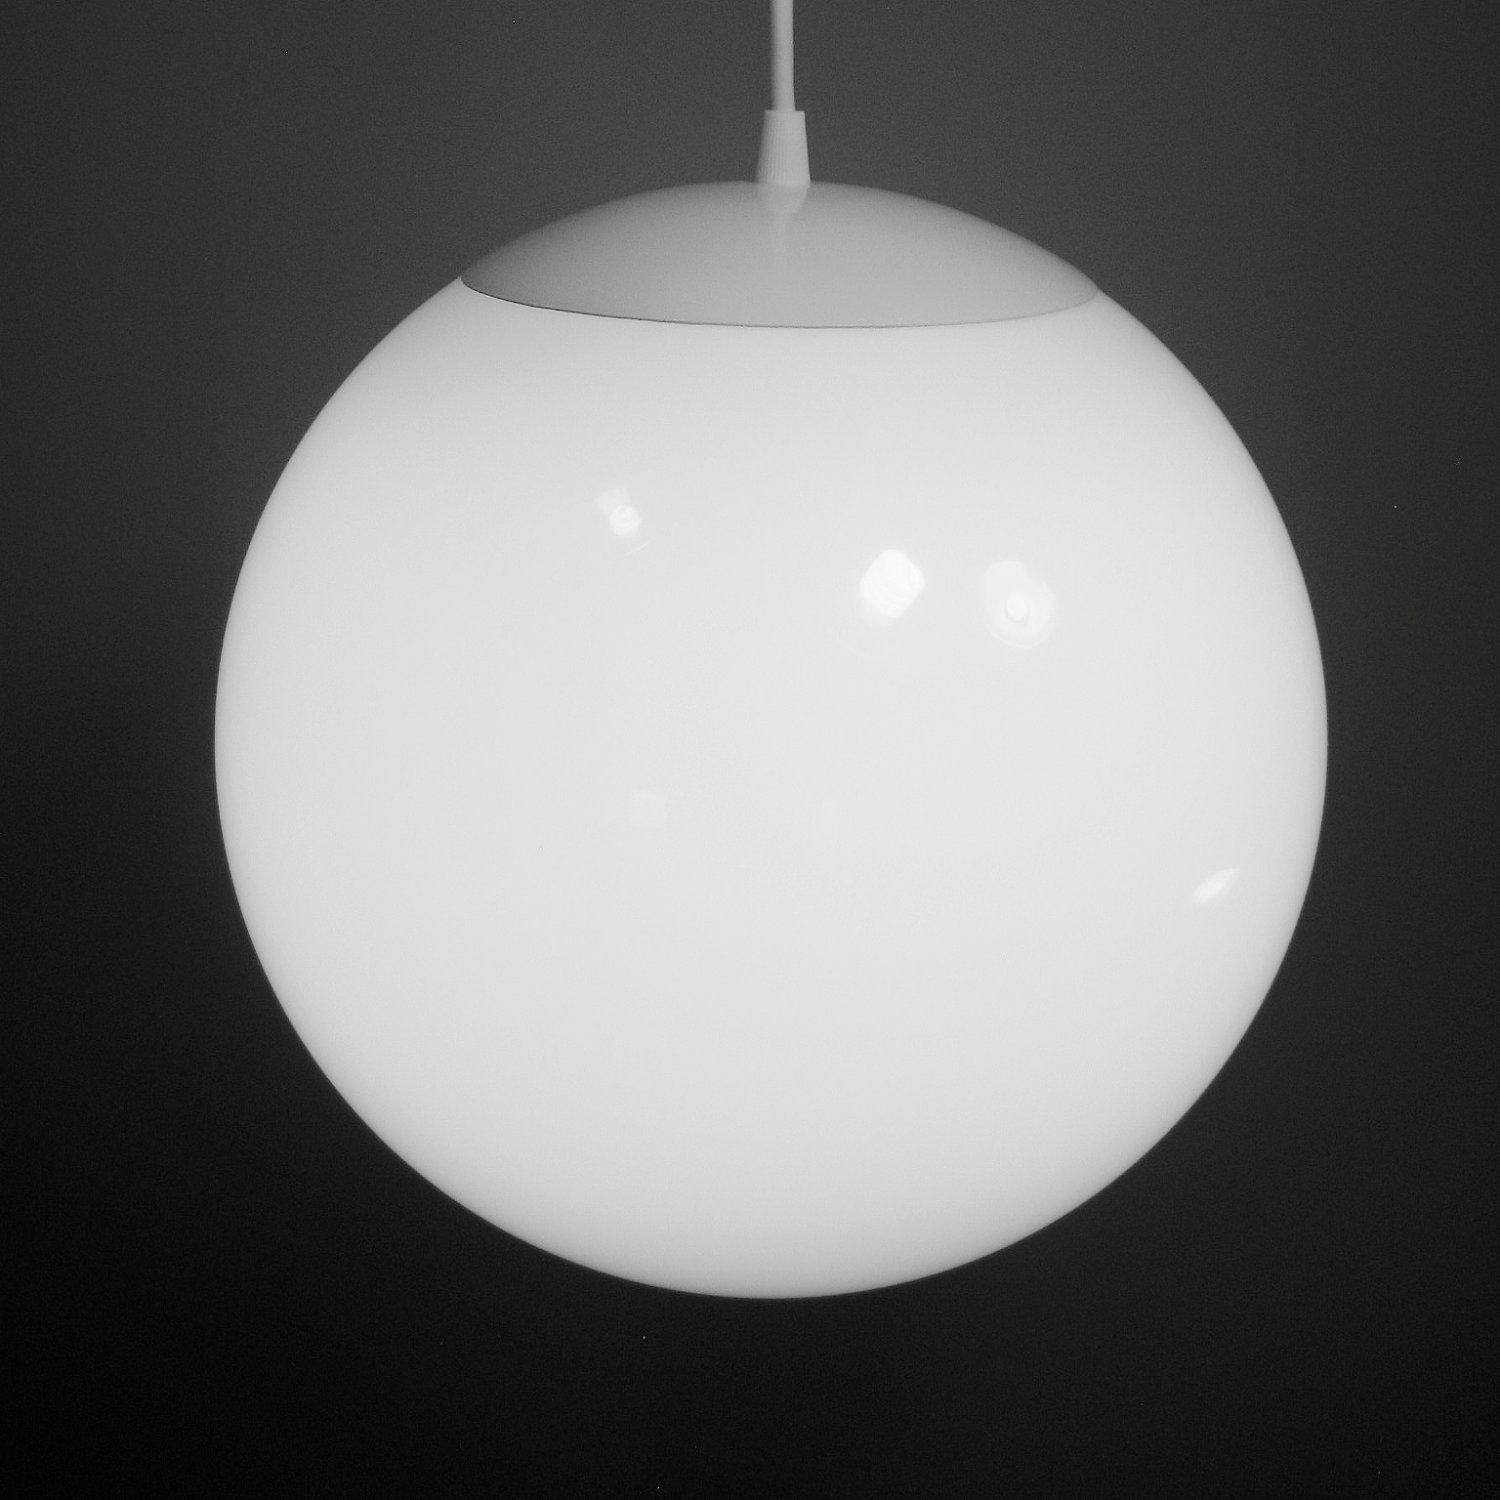 Pendant light large 12 inch glass globe mid century for Mid century modern pendant light fixtures